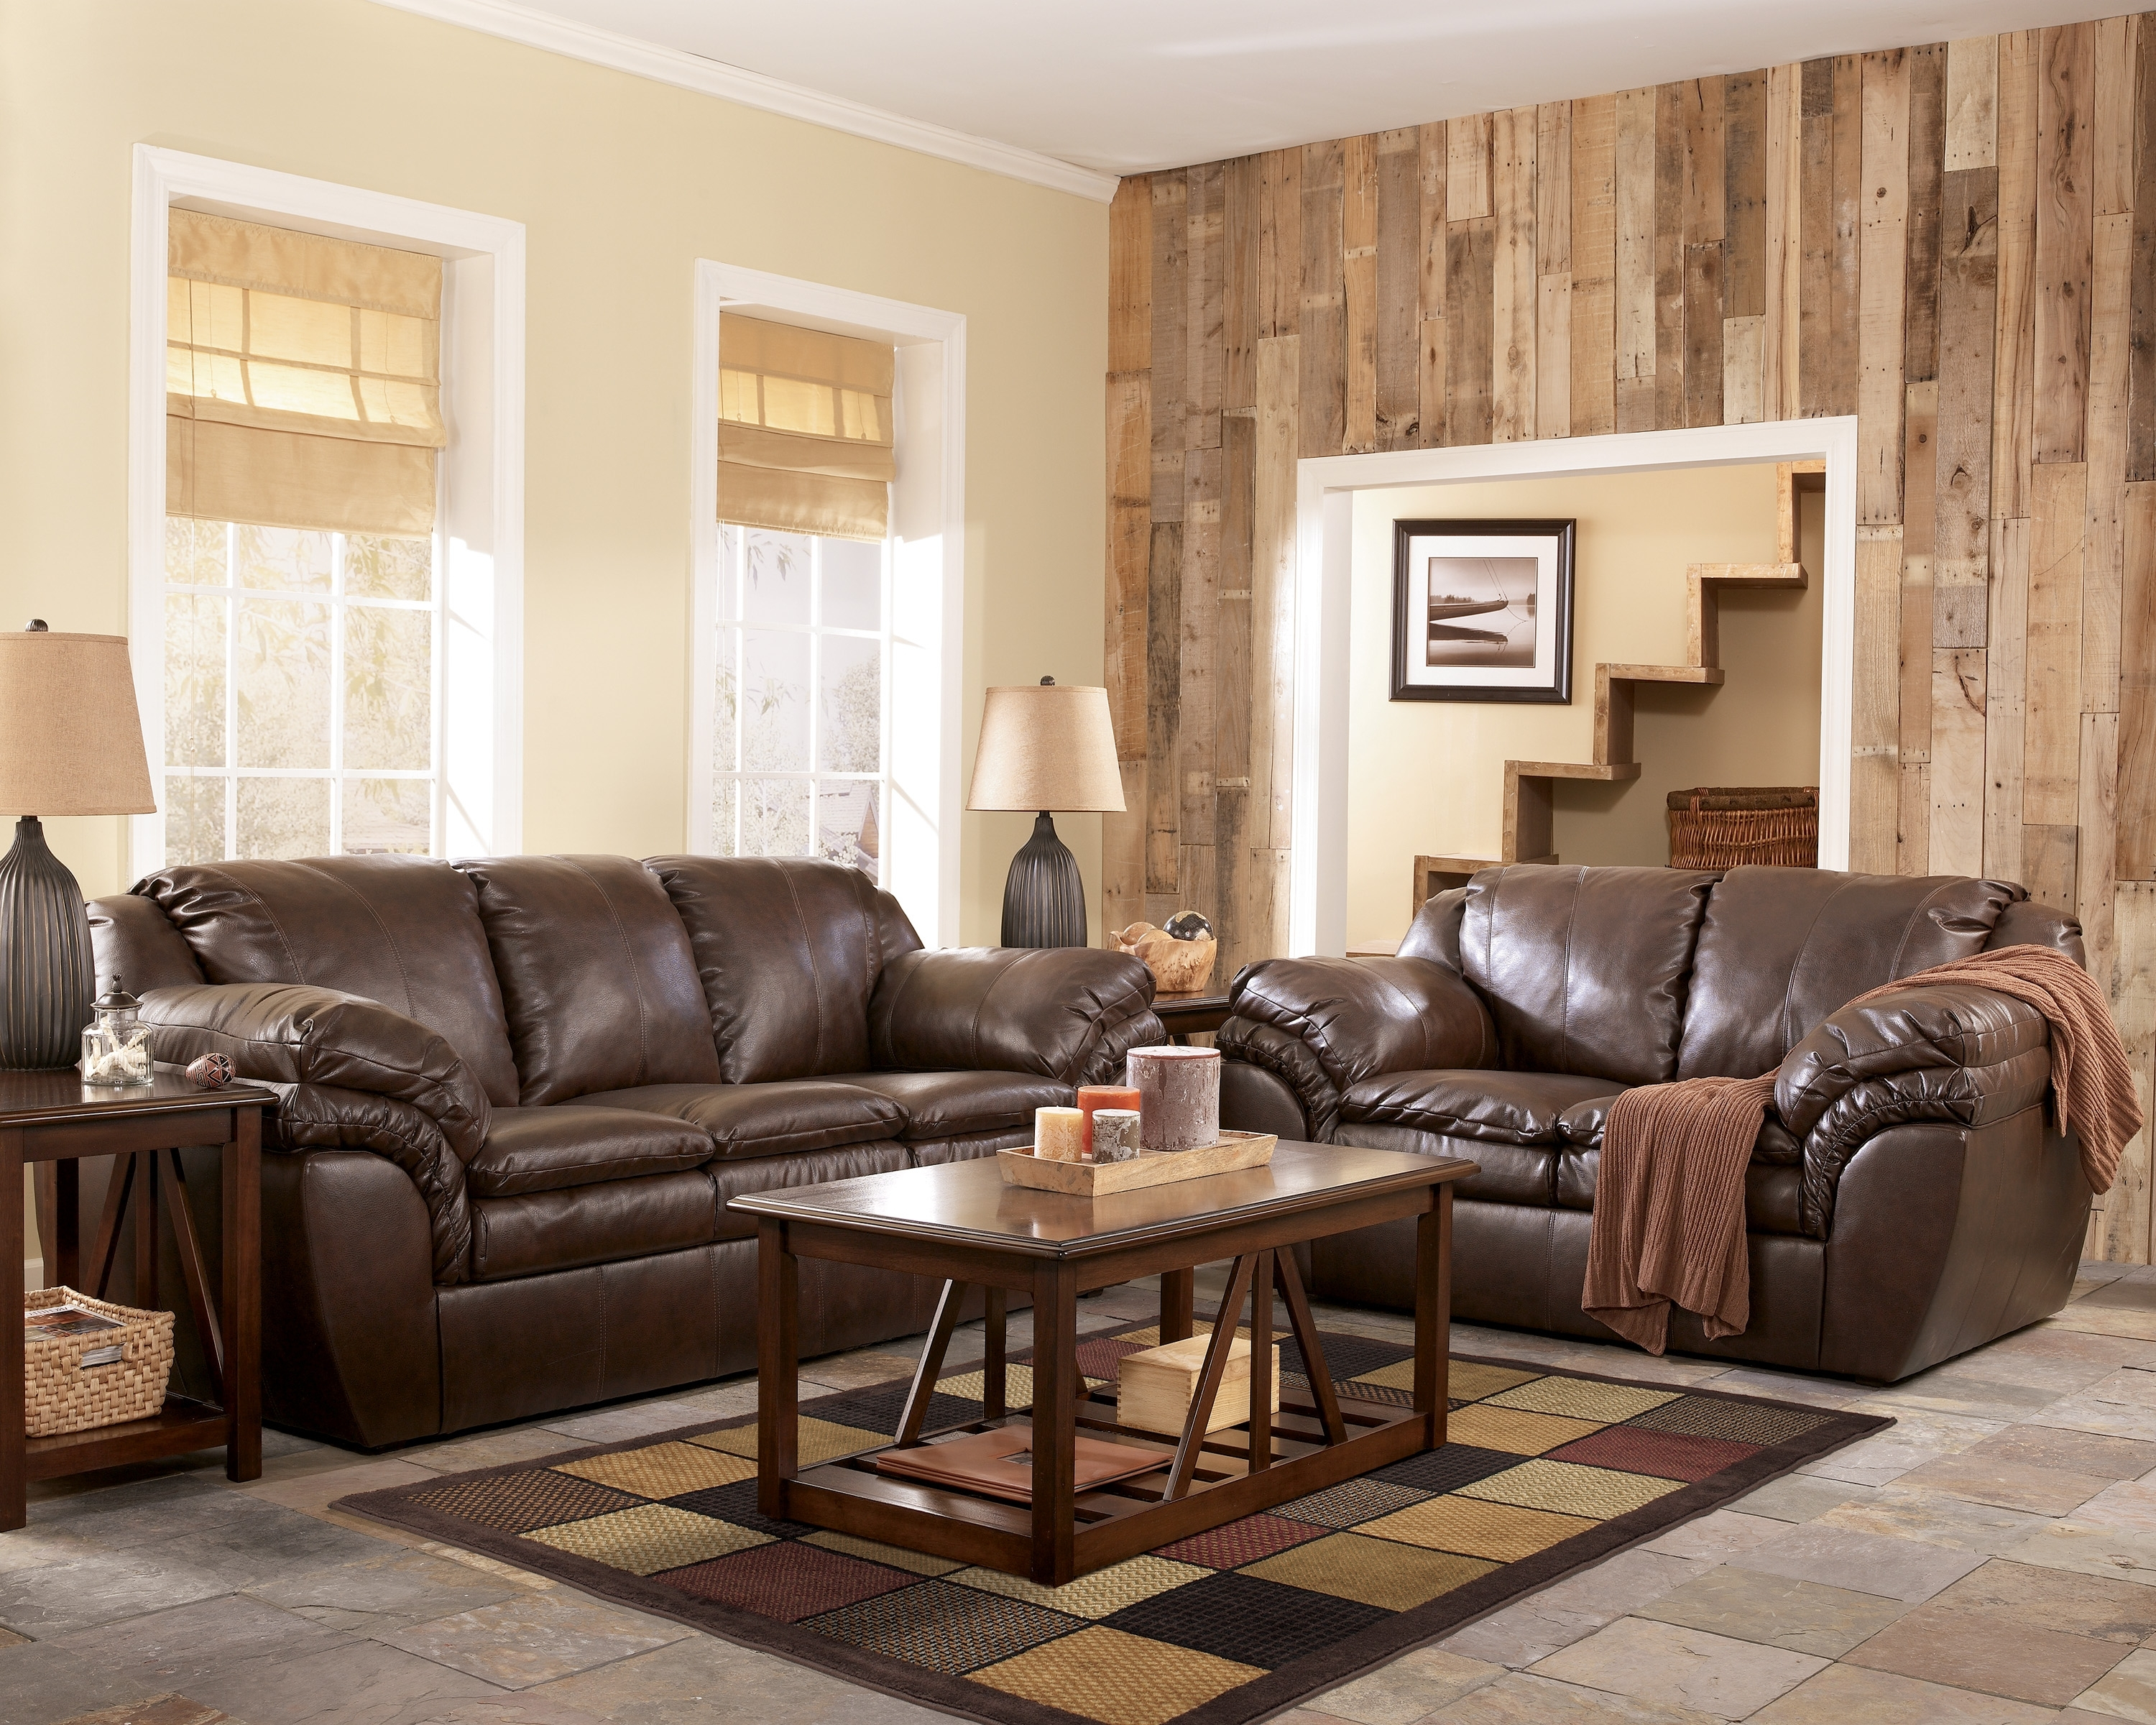 Preferred Furniture: Contemporary Ashley Furniture Sectional Sofas Design With Regard To Vaughan Sectional Sofas (View 11 of 20)